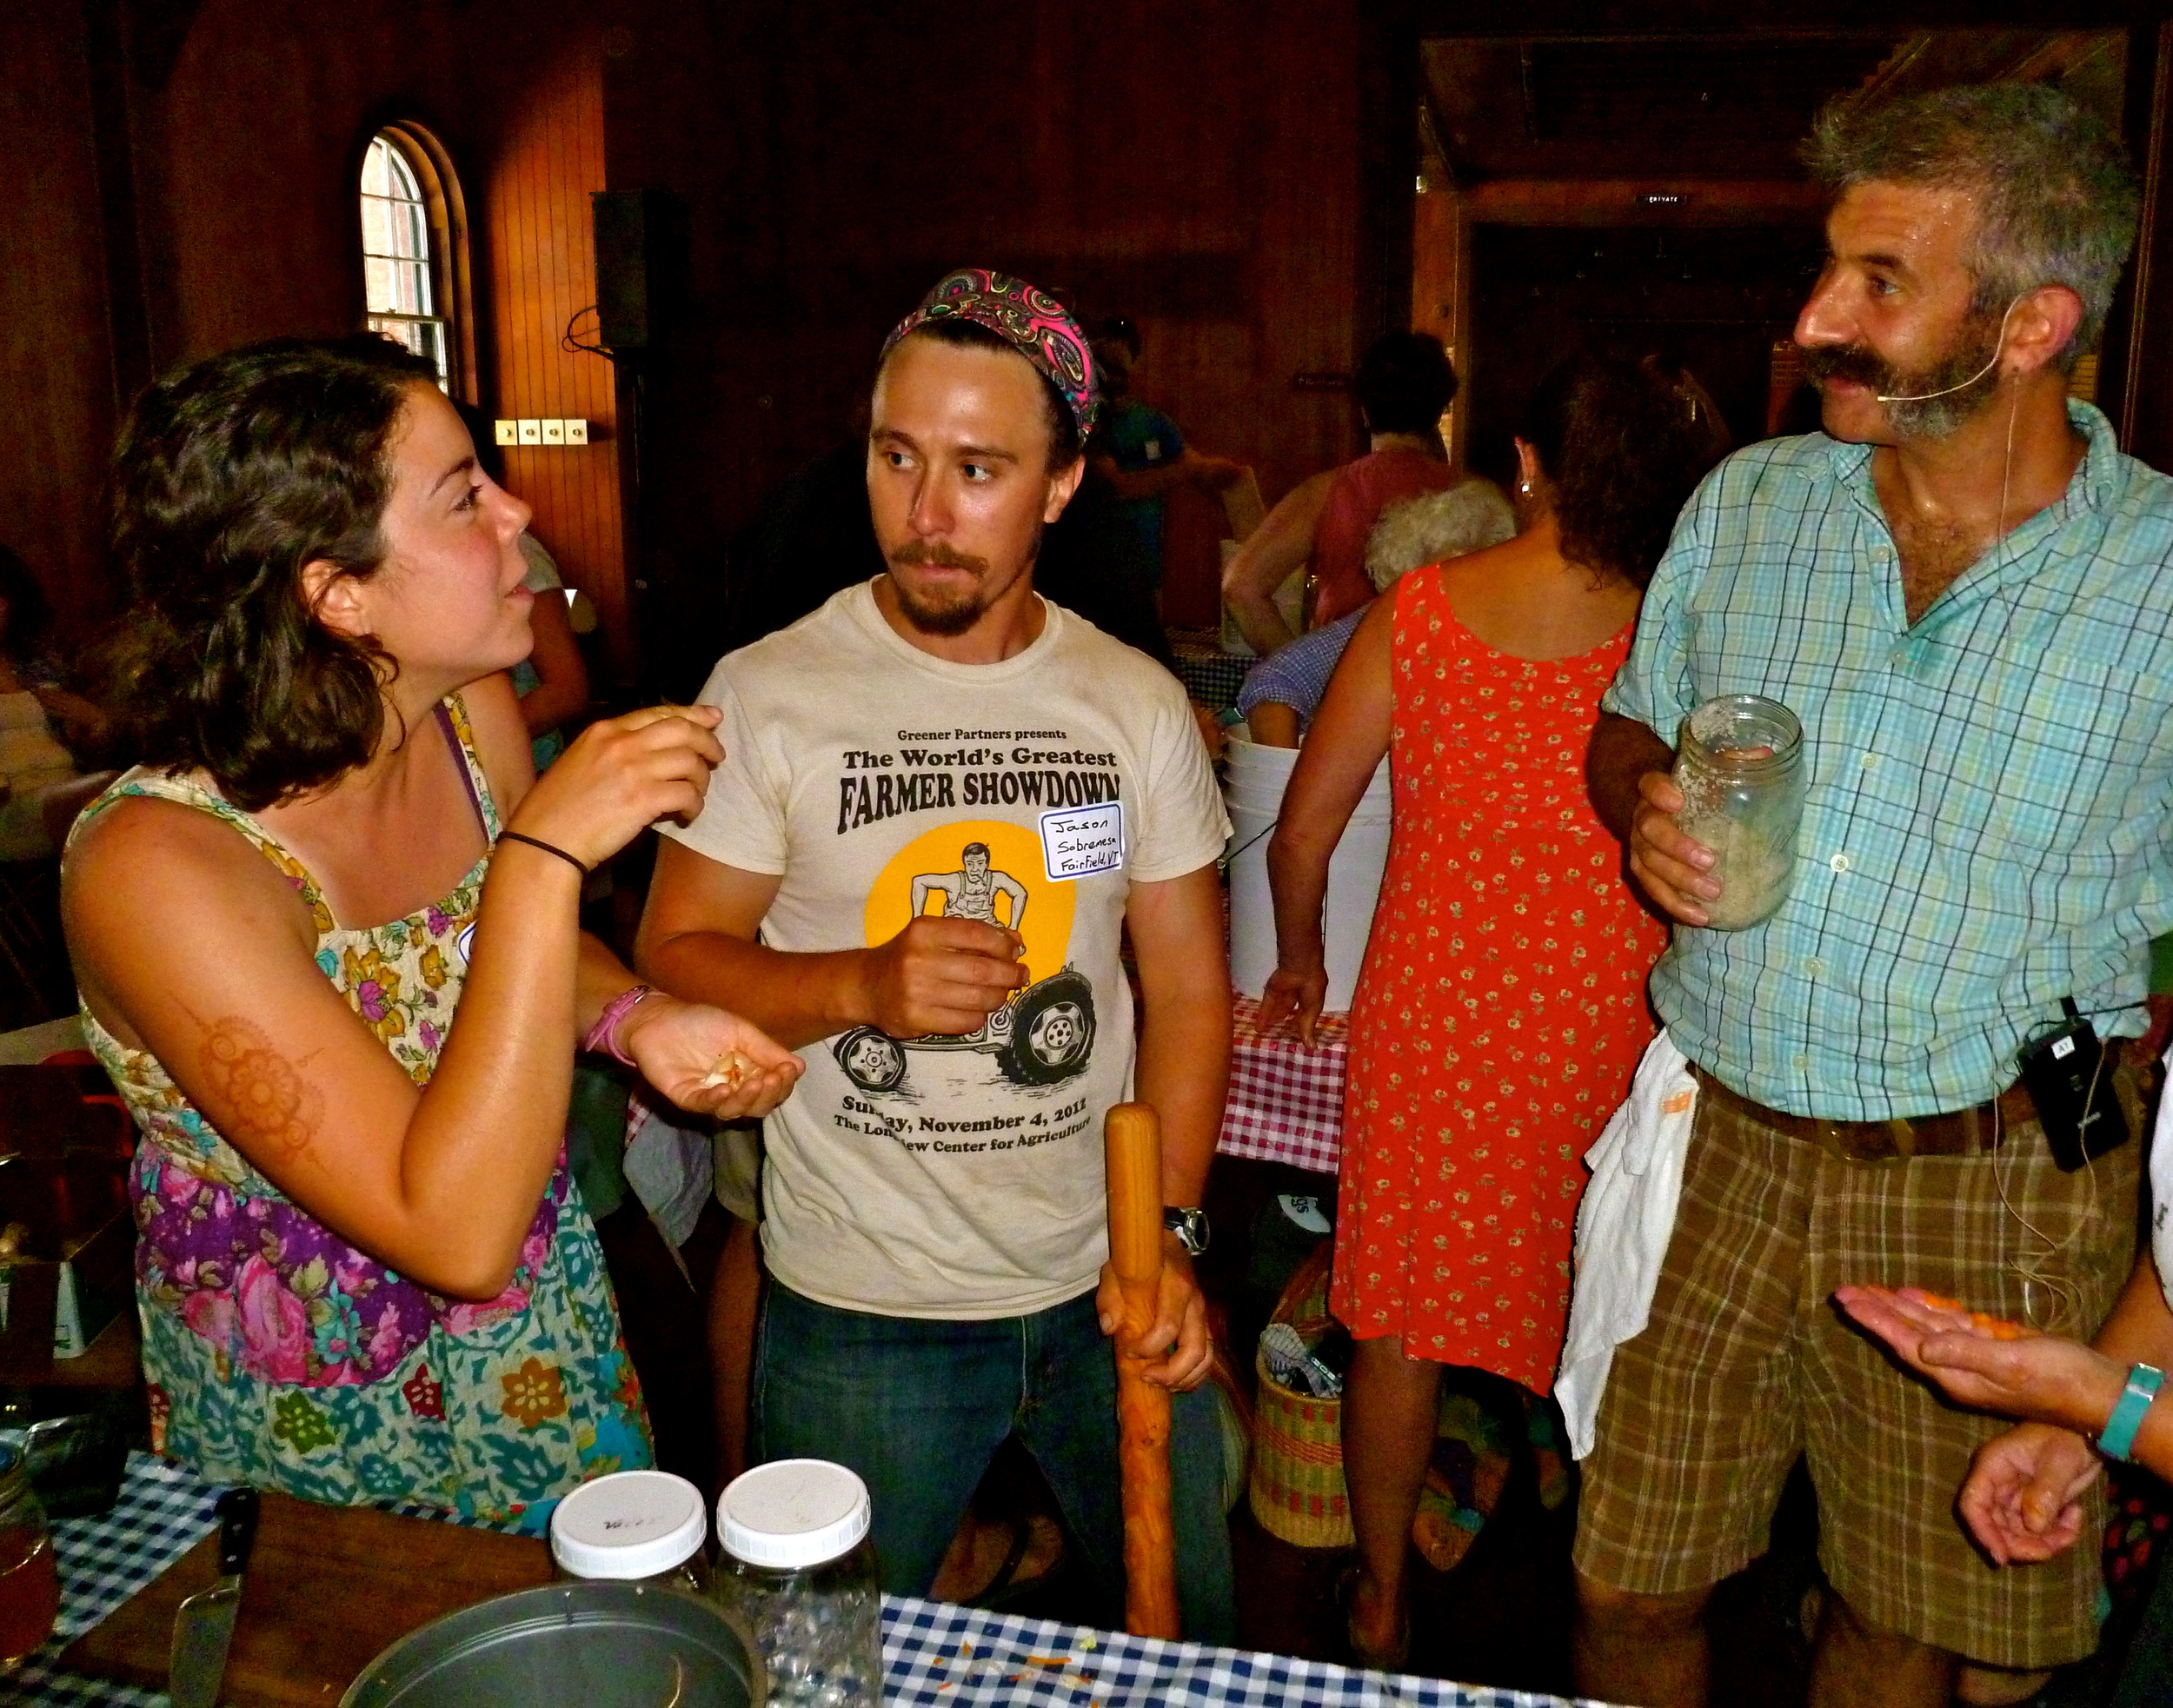 Caitlin & Jason fermenting with Sandor Katz at Shelburne                    Farms, July 2014                Photo Credit Michael Good